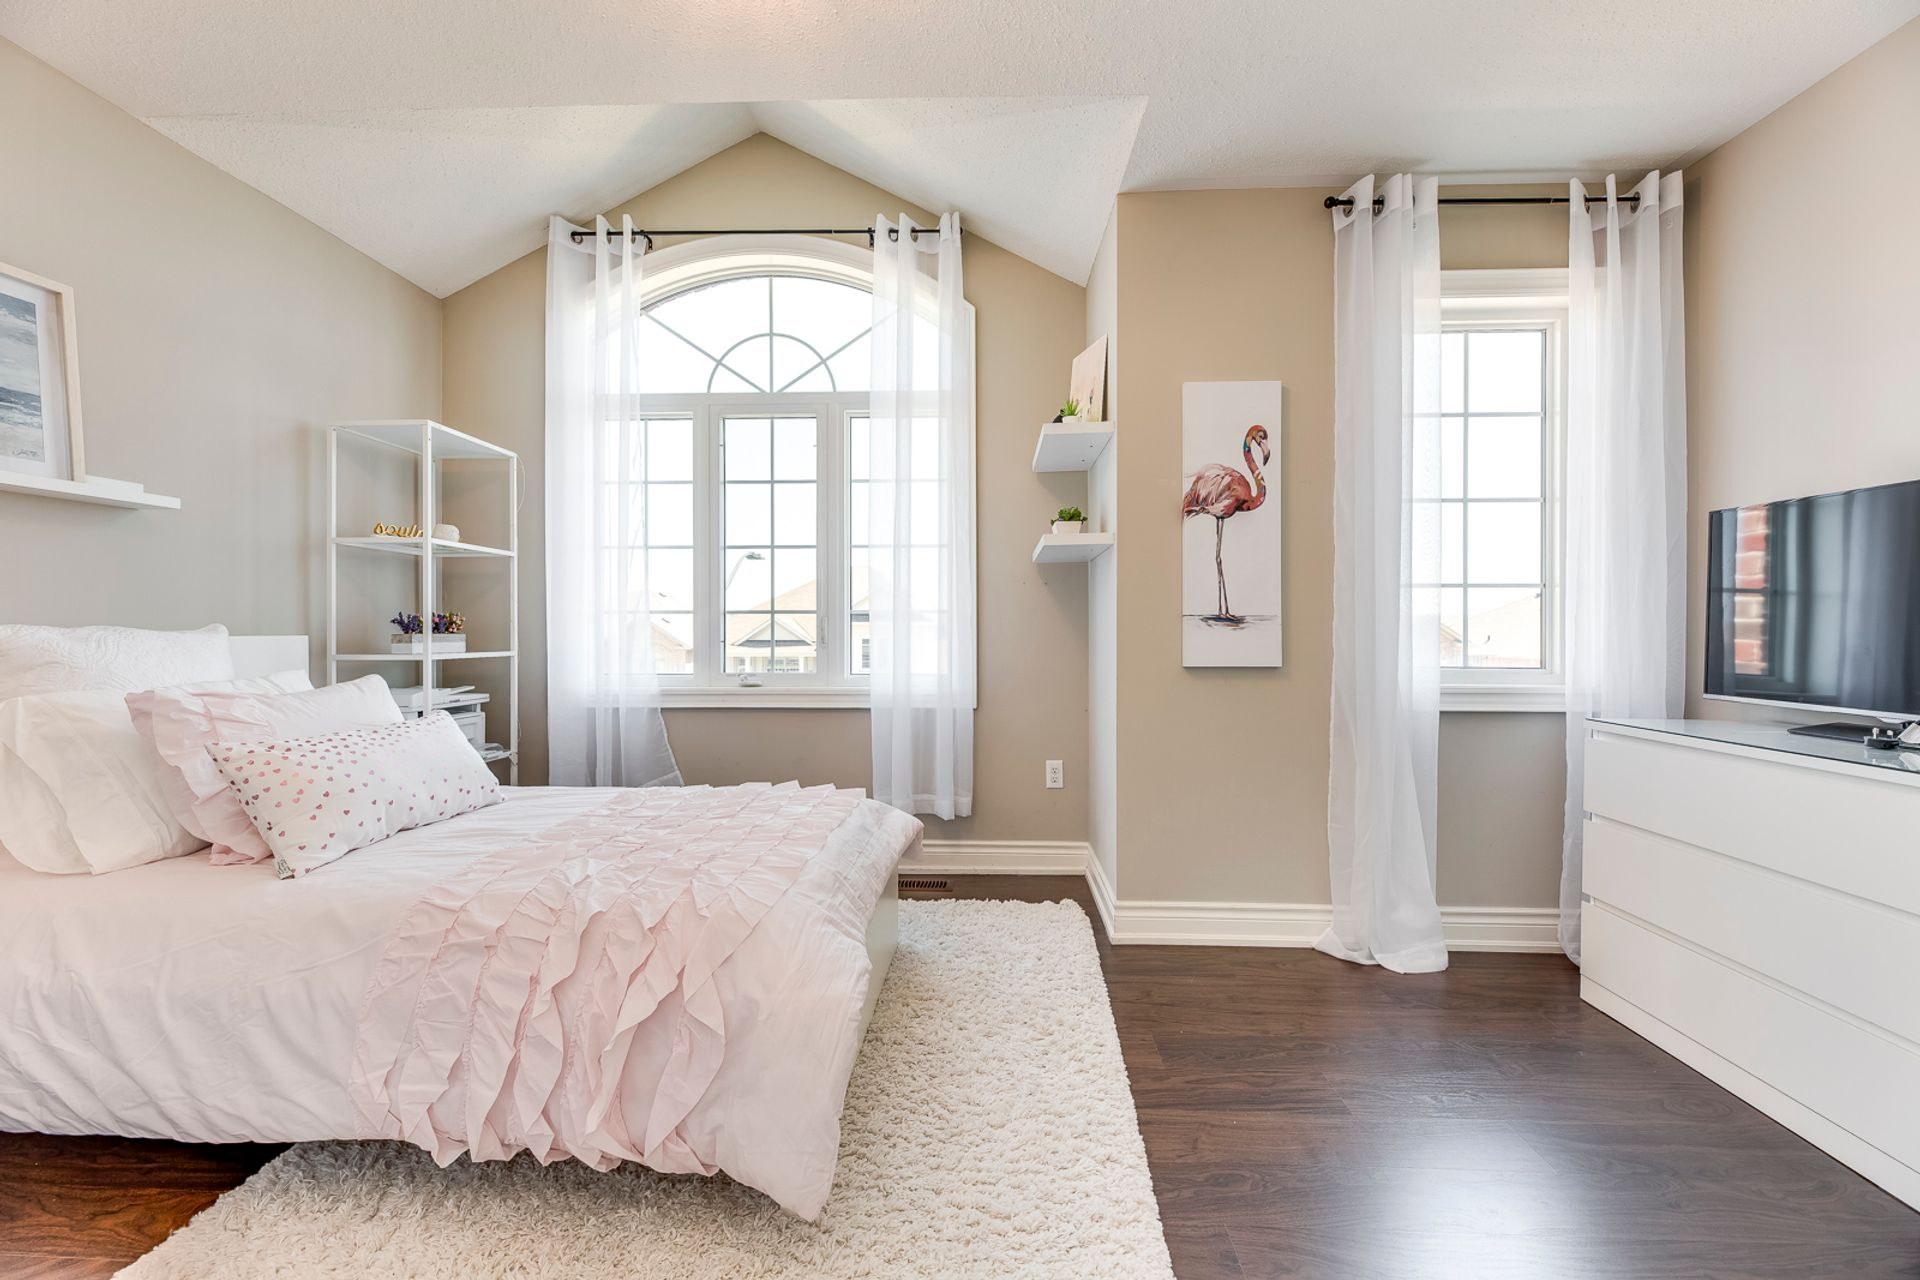 mls-45 at 5480 Meadowcrest Avenue, Churchill Meadows, Mississauga